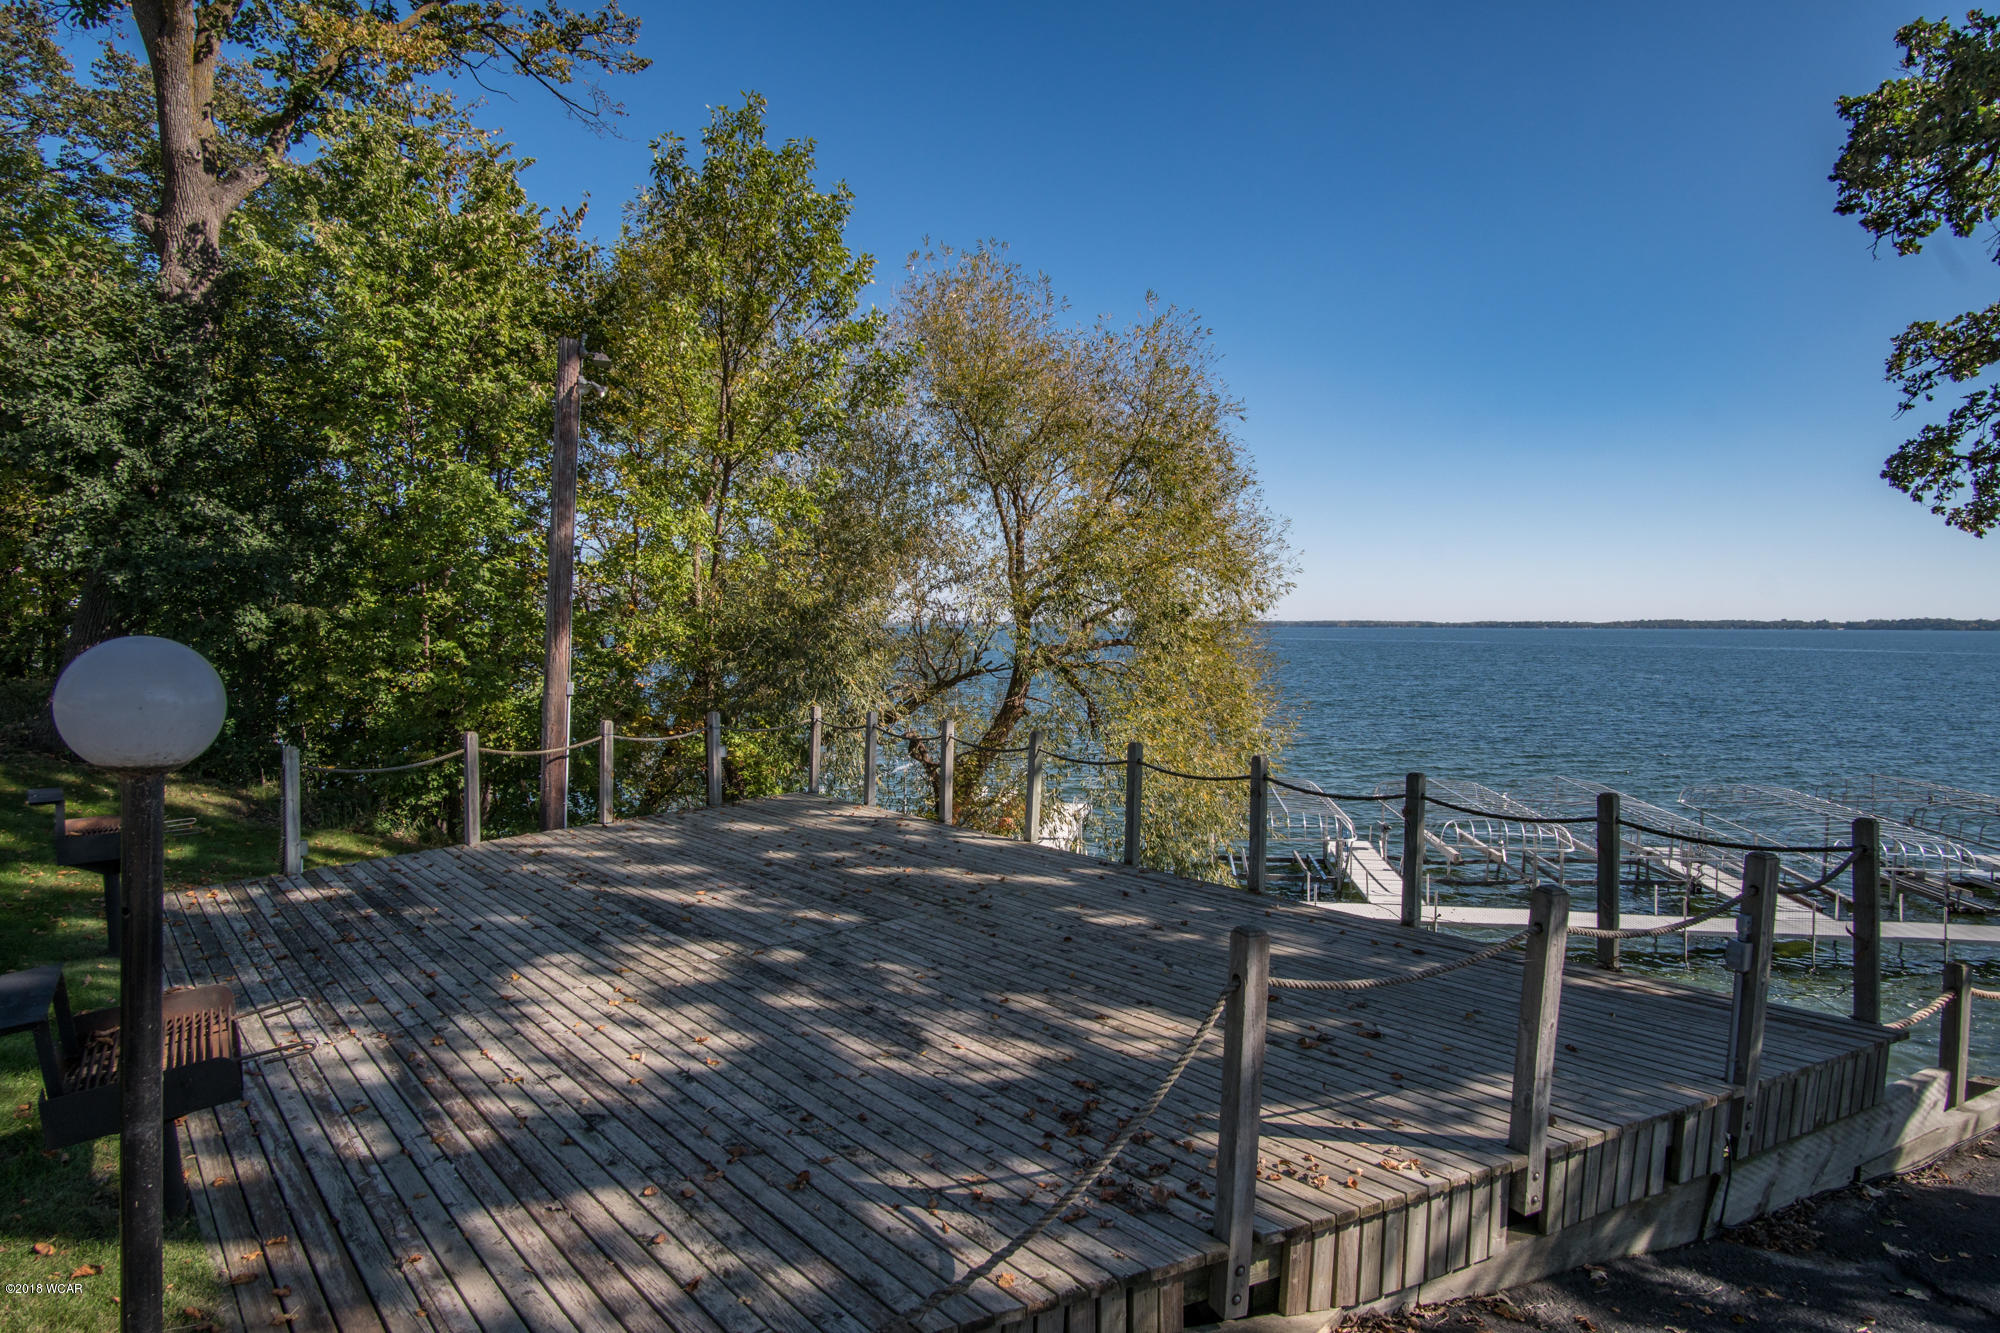 7595 North Shore Drive,Spicer,2 Bedrooms Bedrooms,2 BathroomsBathrooms,Single Family,North Shore Drive,6033084